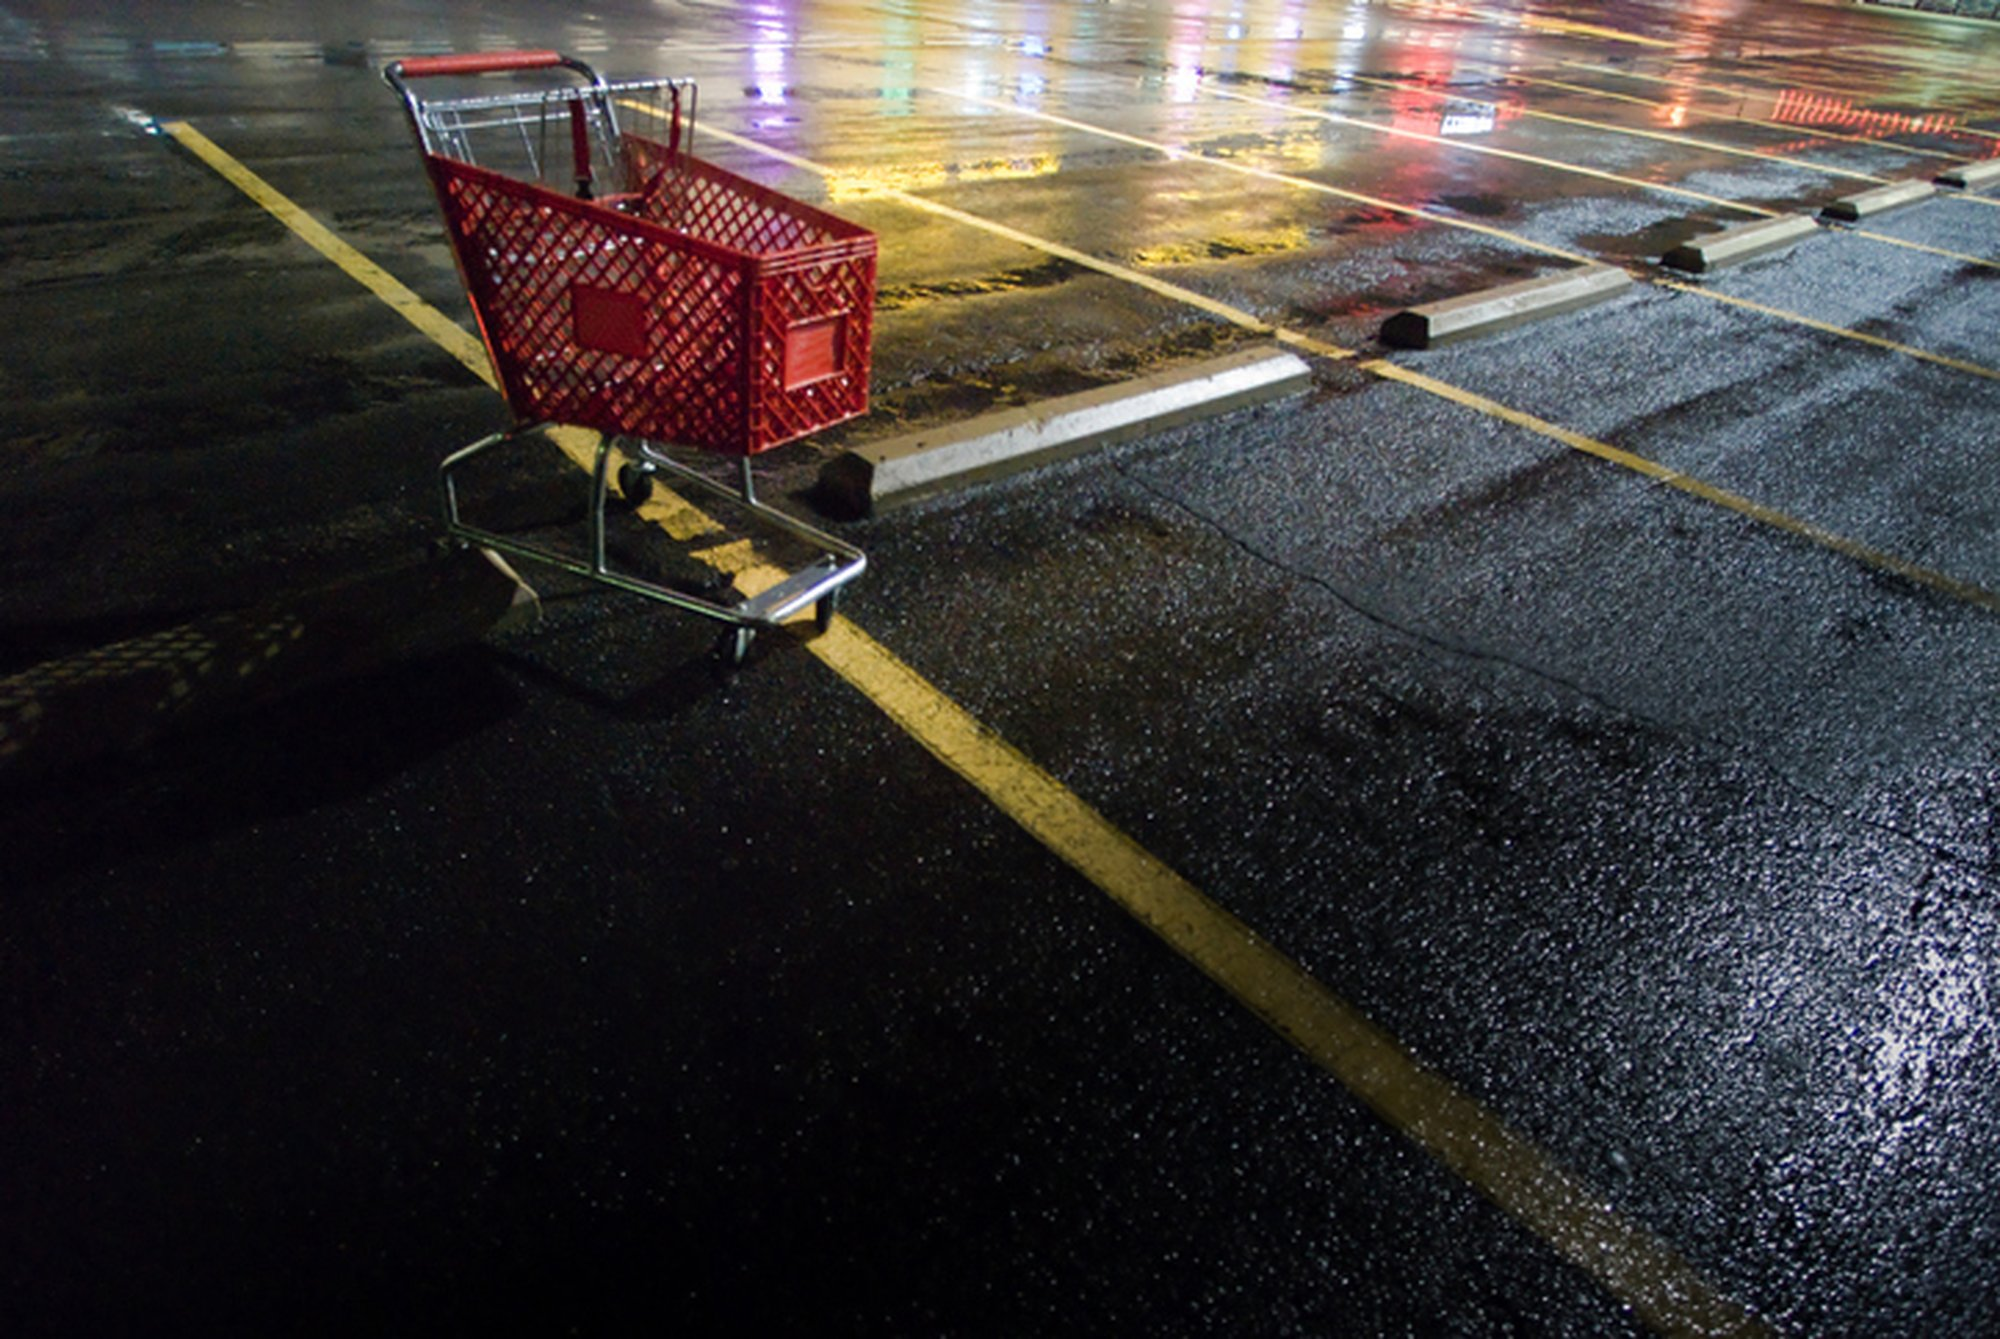 Why Don't People Return Their Shopping Carts? - Scientific American - Pocket